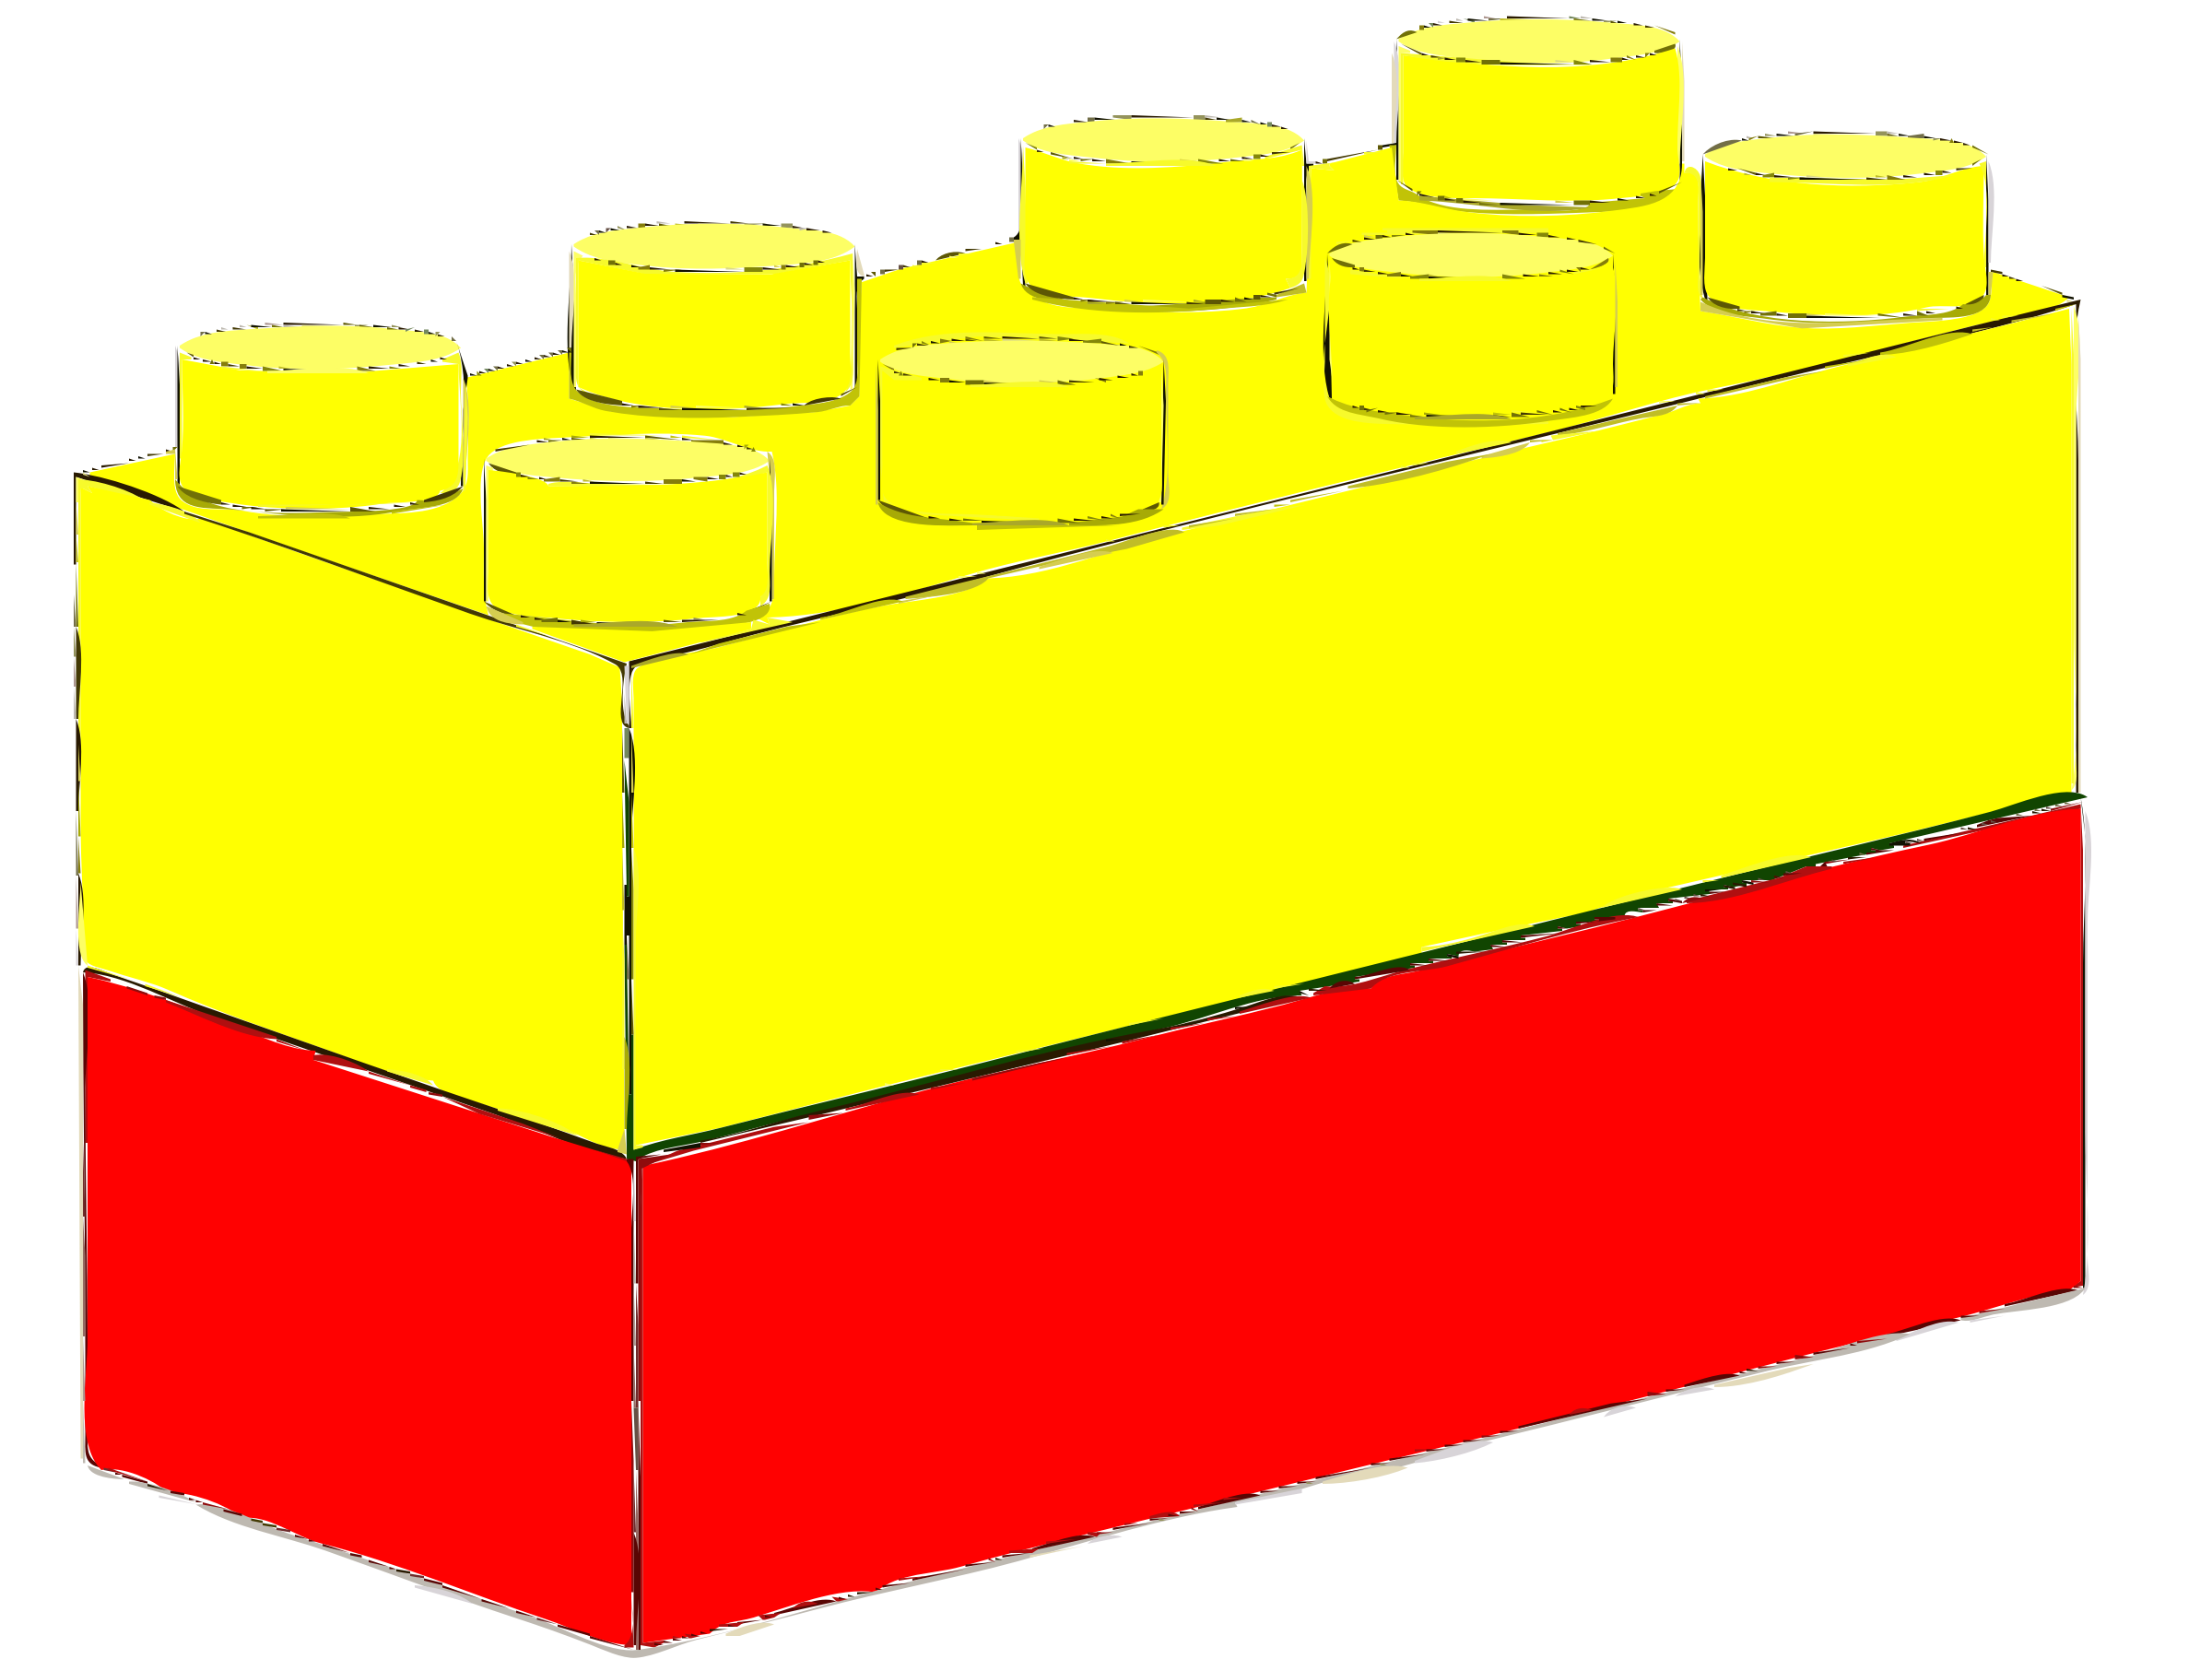 Bricks Yellow Red by mcgrath.timothy